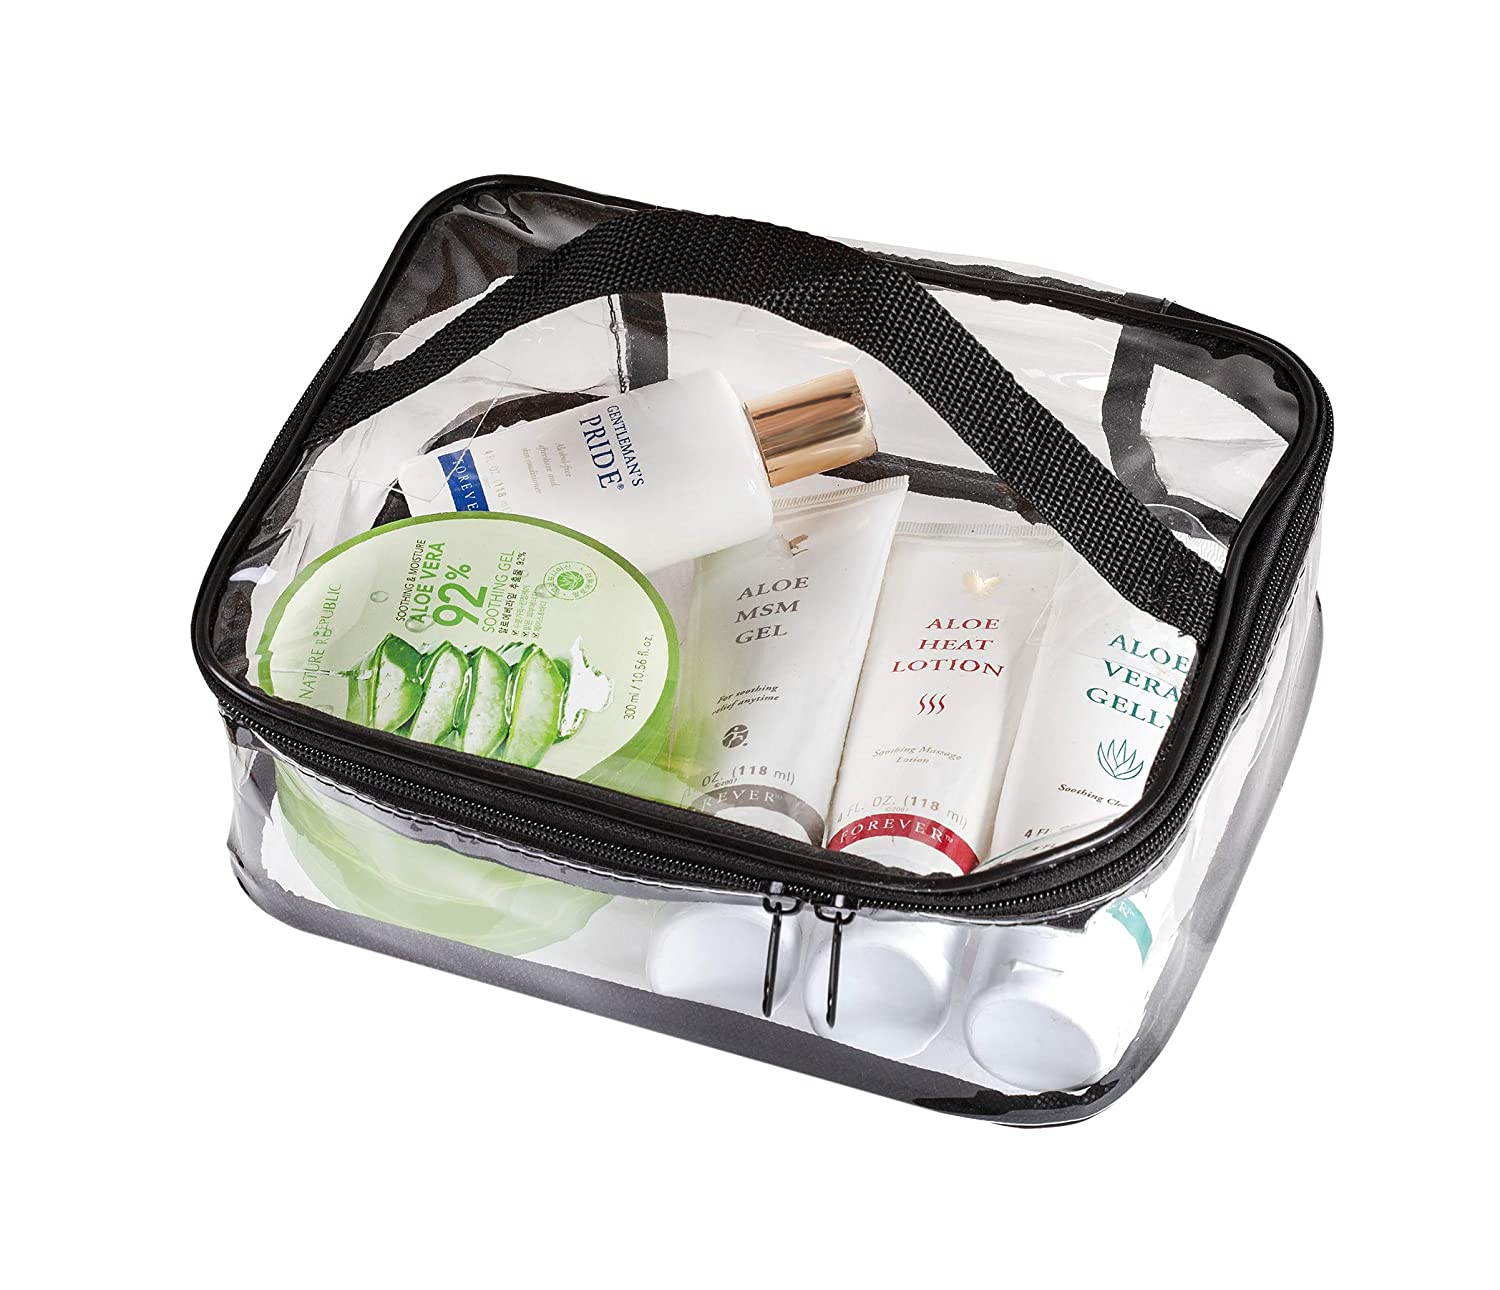 Amazon.com : Clear Travel Cosmetic Bag Makeup Pouch, Train Case Organizer with Top Handle (Large) : Beauty